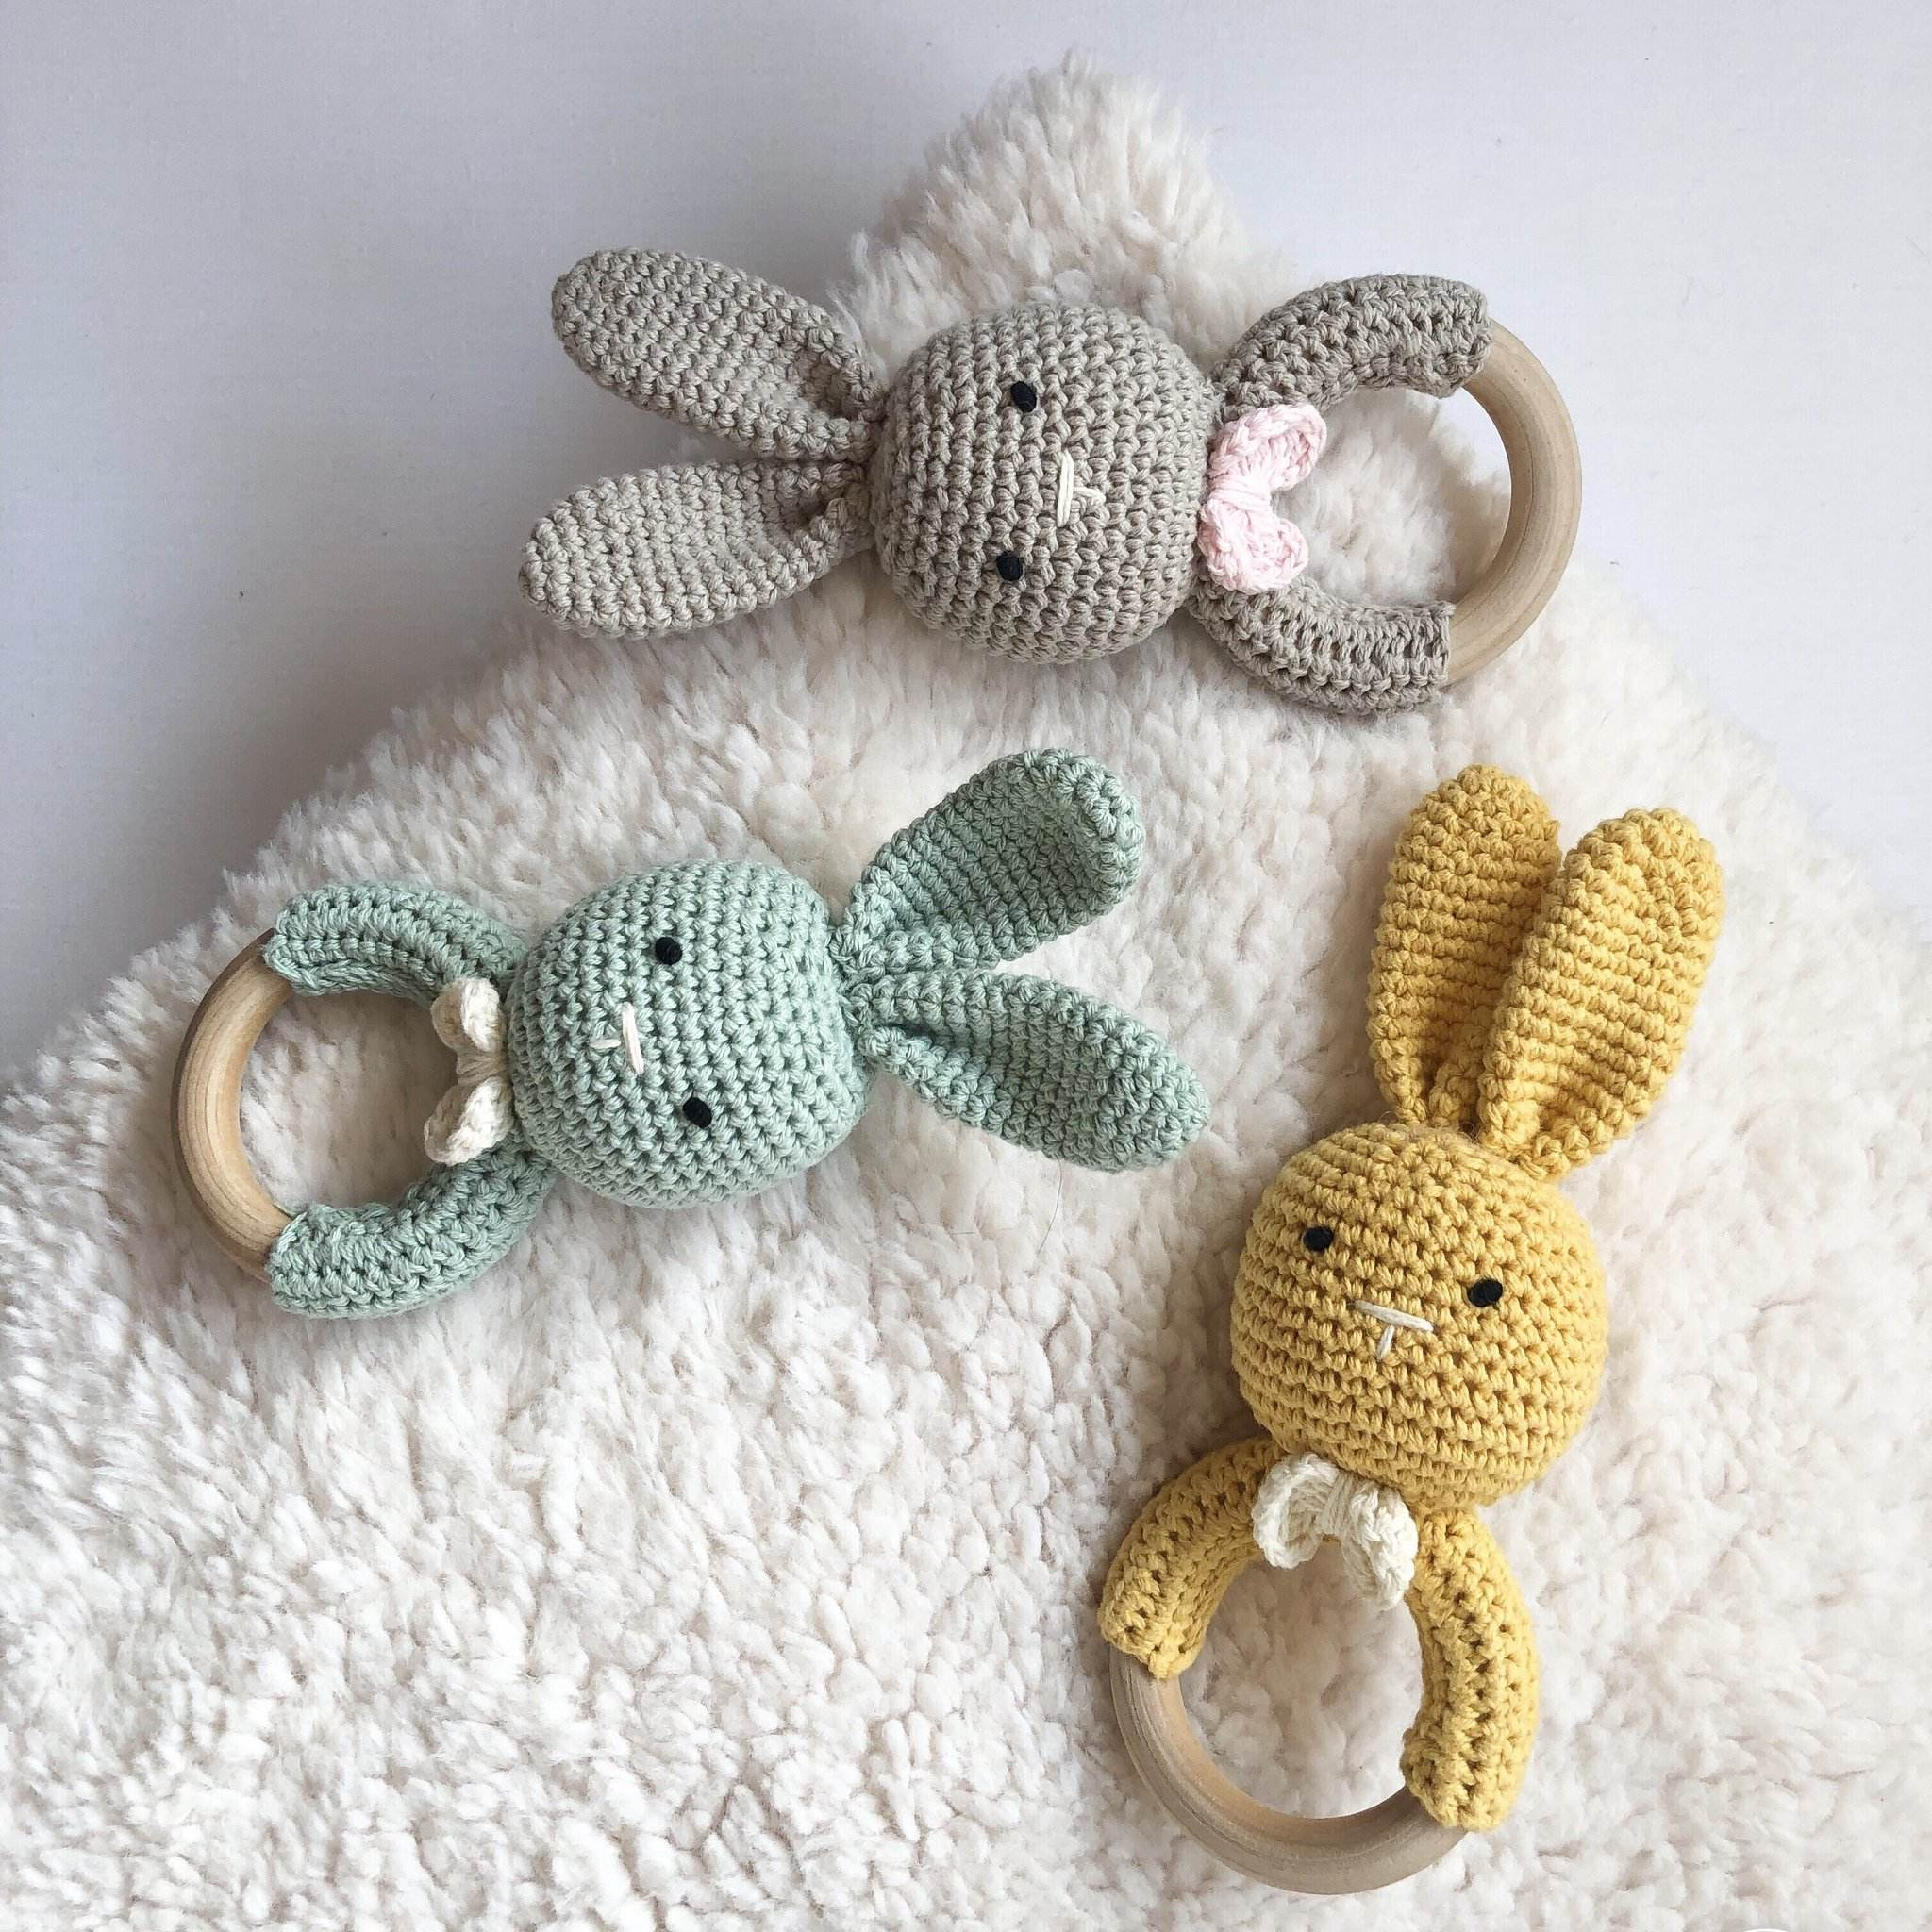 crochet amigurumi teether bracelet baby cotton crochet teething toy handmade wooden bunny teether rattle